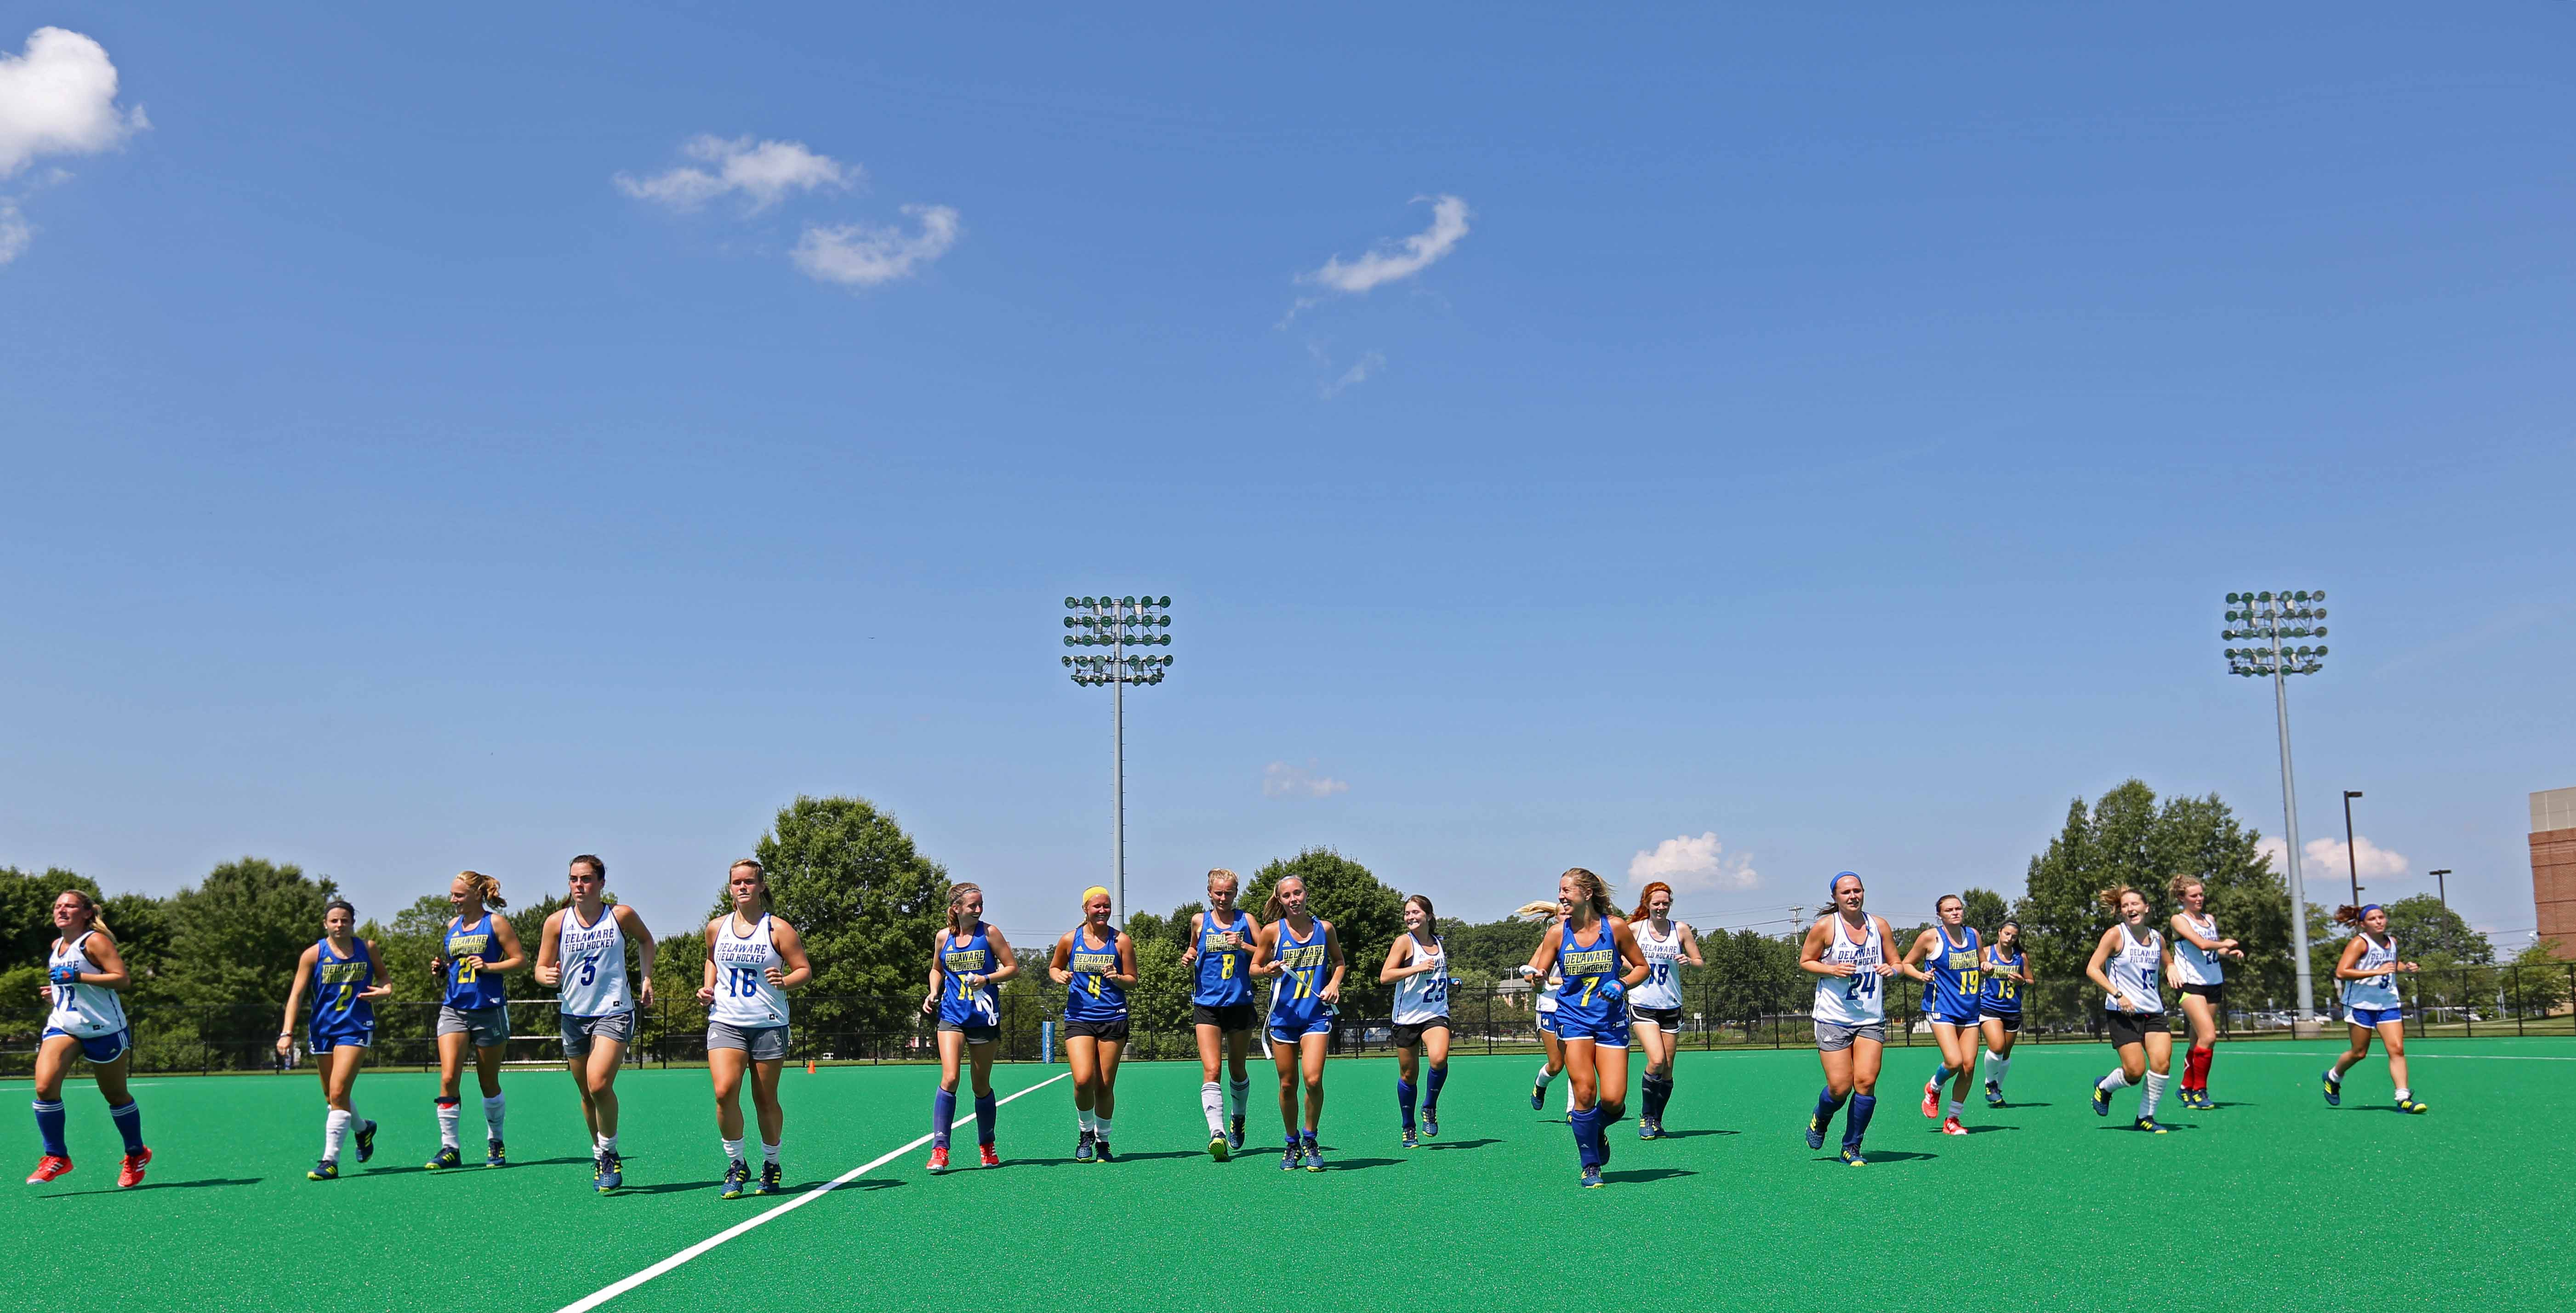 Having been there and done that, NCAA champ Hens again start with big field hockey goals